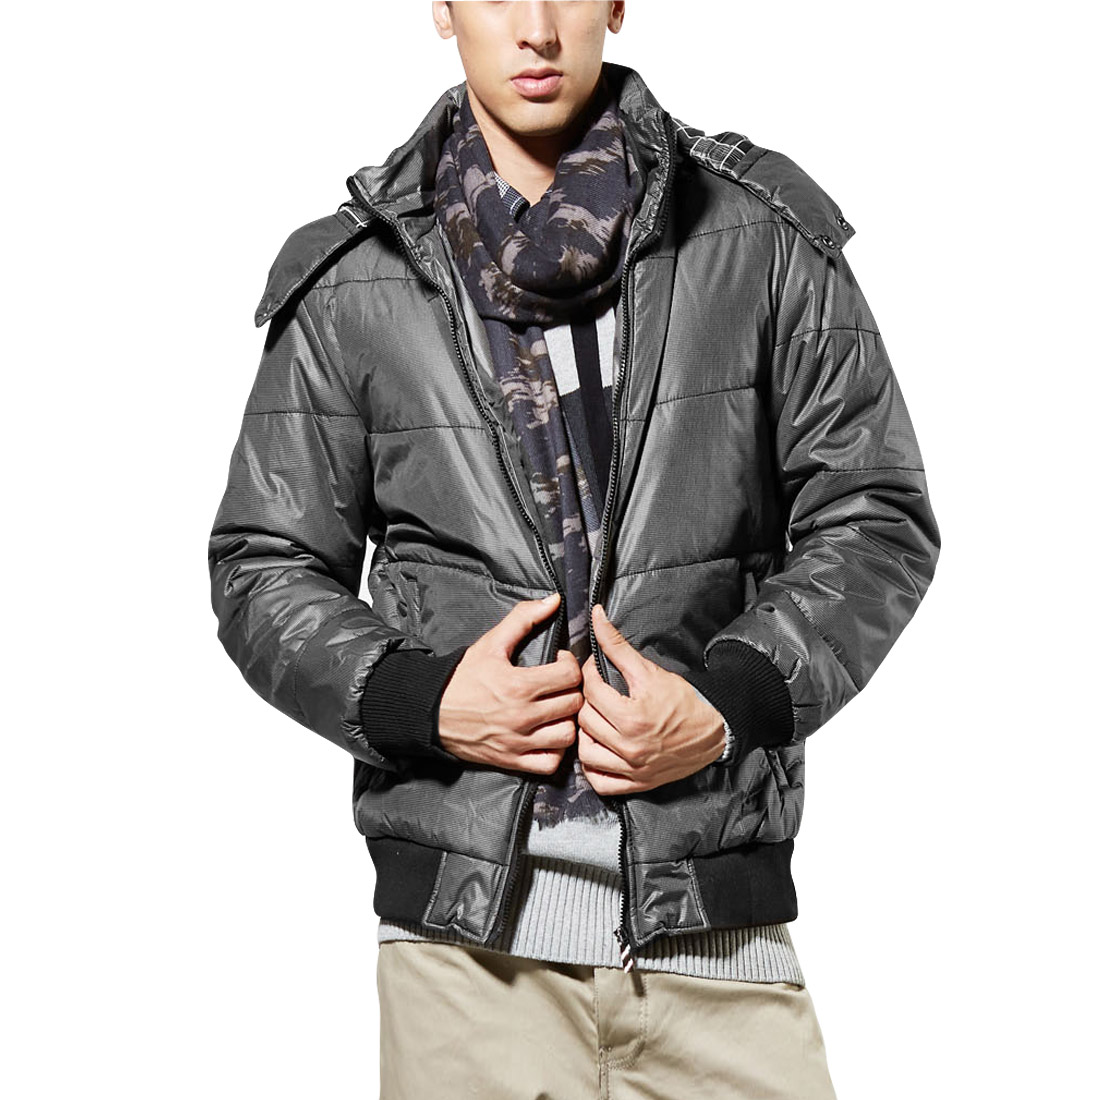 Men's Winter Convertible Collar Comfortable Blue Hooded Padded Coat Gray M